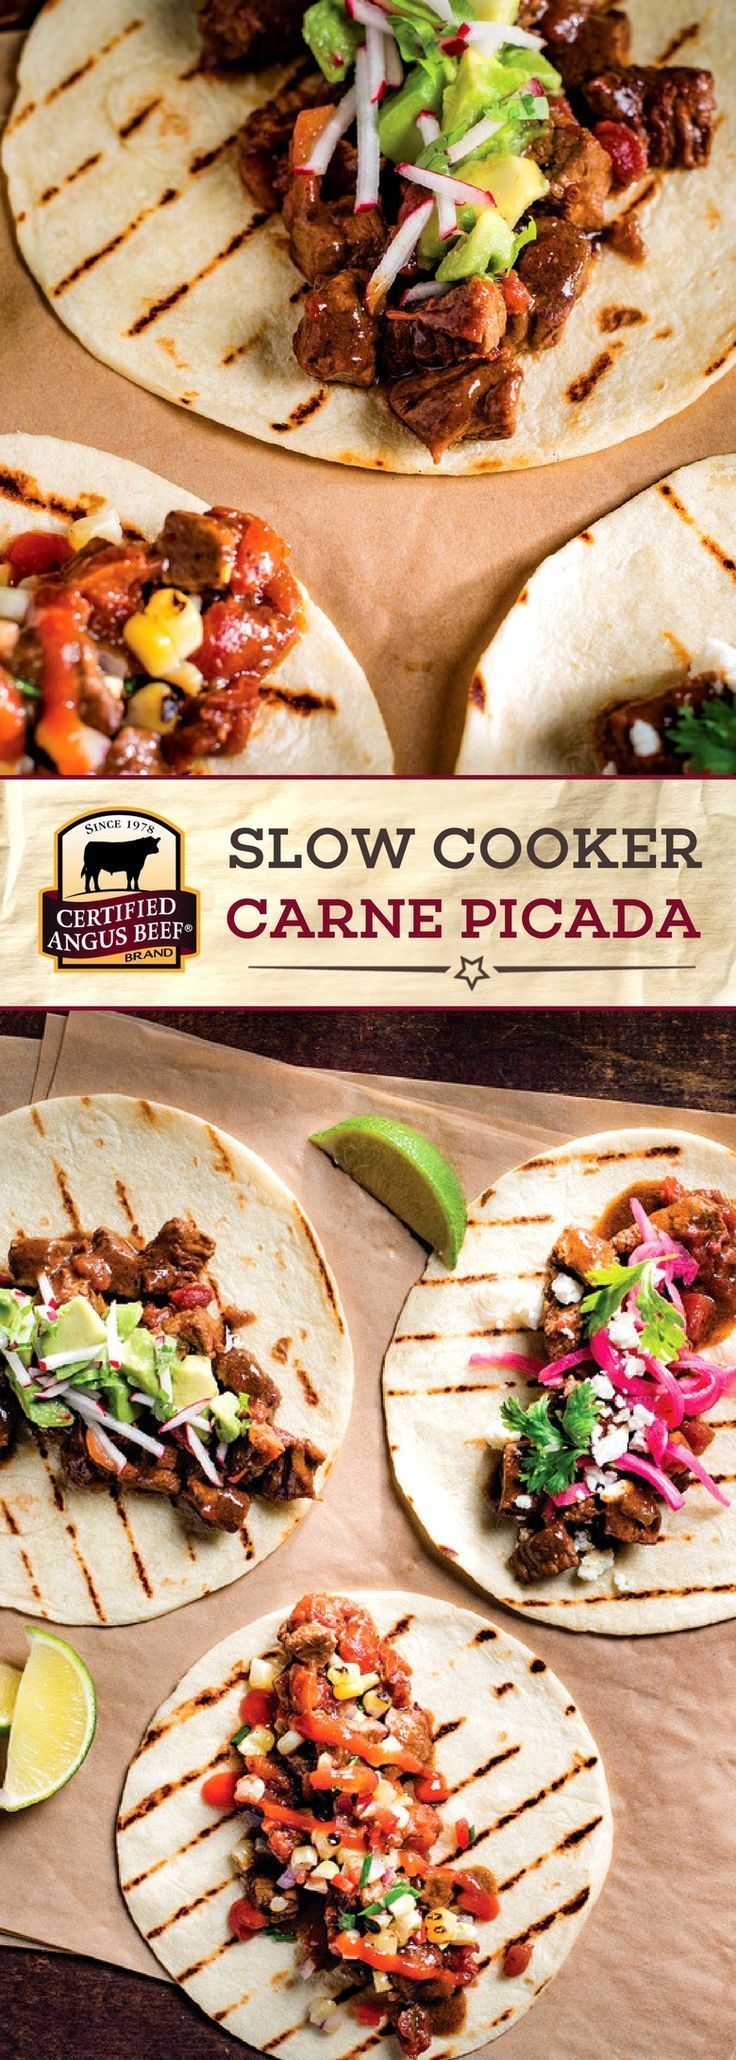 Certified Angus Beef®️️️️️️️ brand Slow Cooker Carne Picada is an EASY recipe that you can make in your SLOW COOKER! The best bottom round roast seasoned perfectly with chili powder, tomatoes, chilis and cumin makes this dish STAND OUT! Serve it over rice or in tacos or burritos for a SIMPLE, tasty meal. #bestangusbeef #certifiedangusbeef #beefrecipe #easyrecipes #slowcookerrecipes